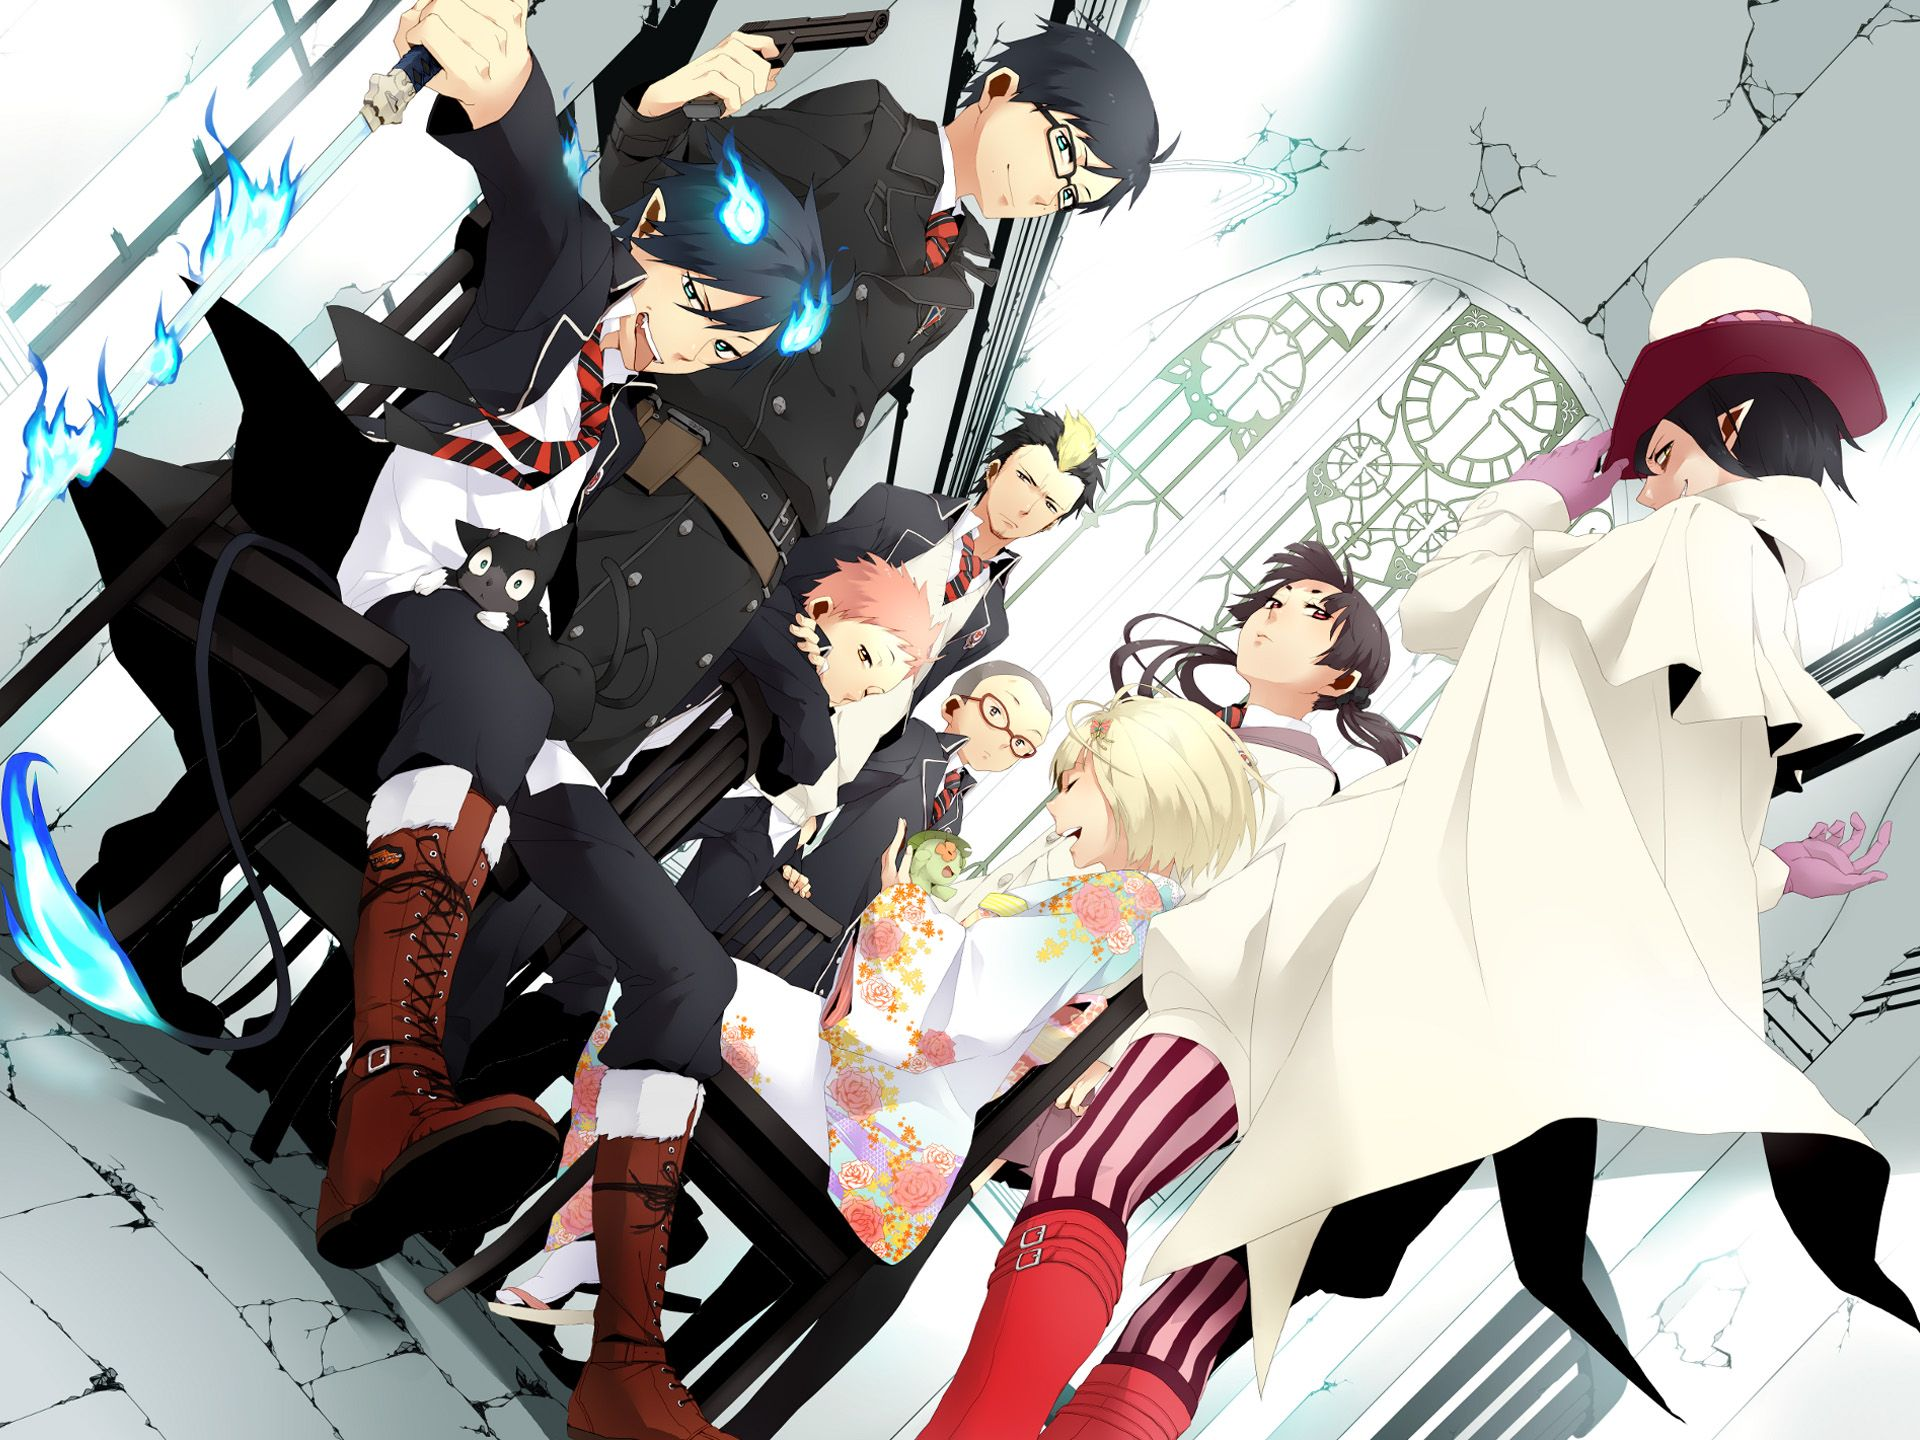 Blue Exorcist Everybodys Just Chilling Out Together